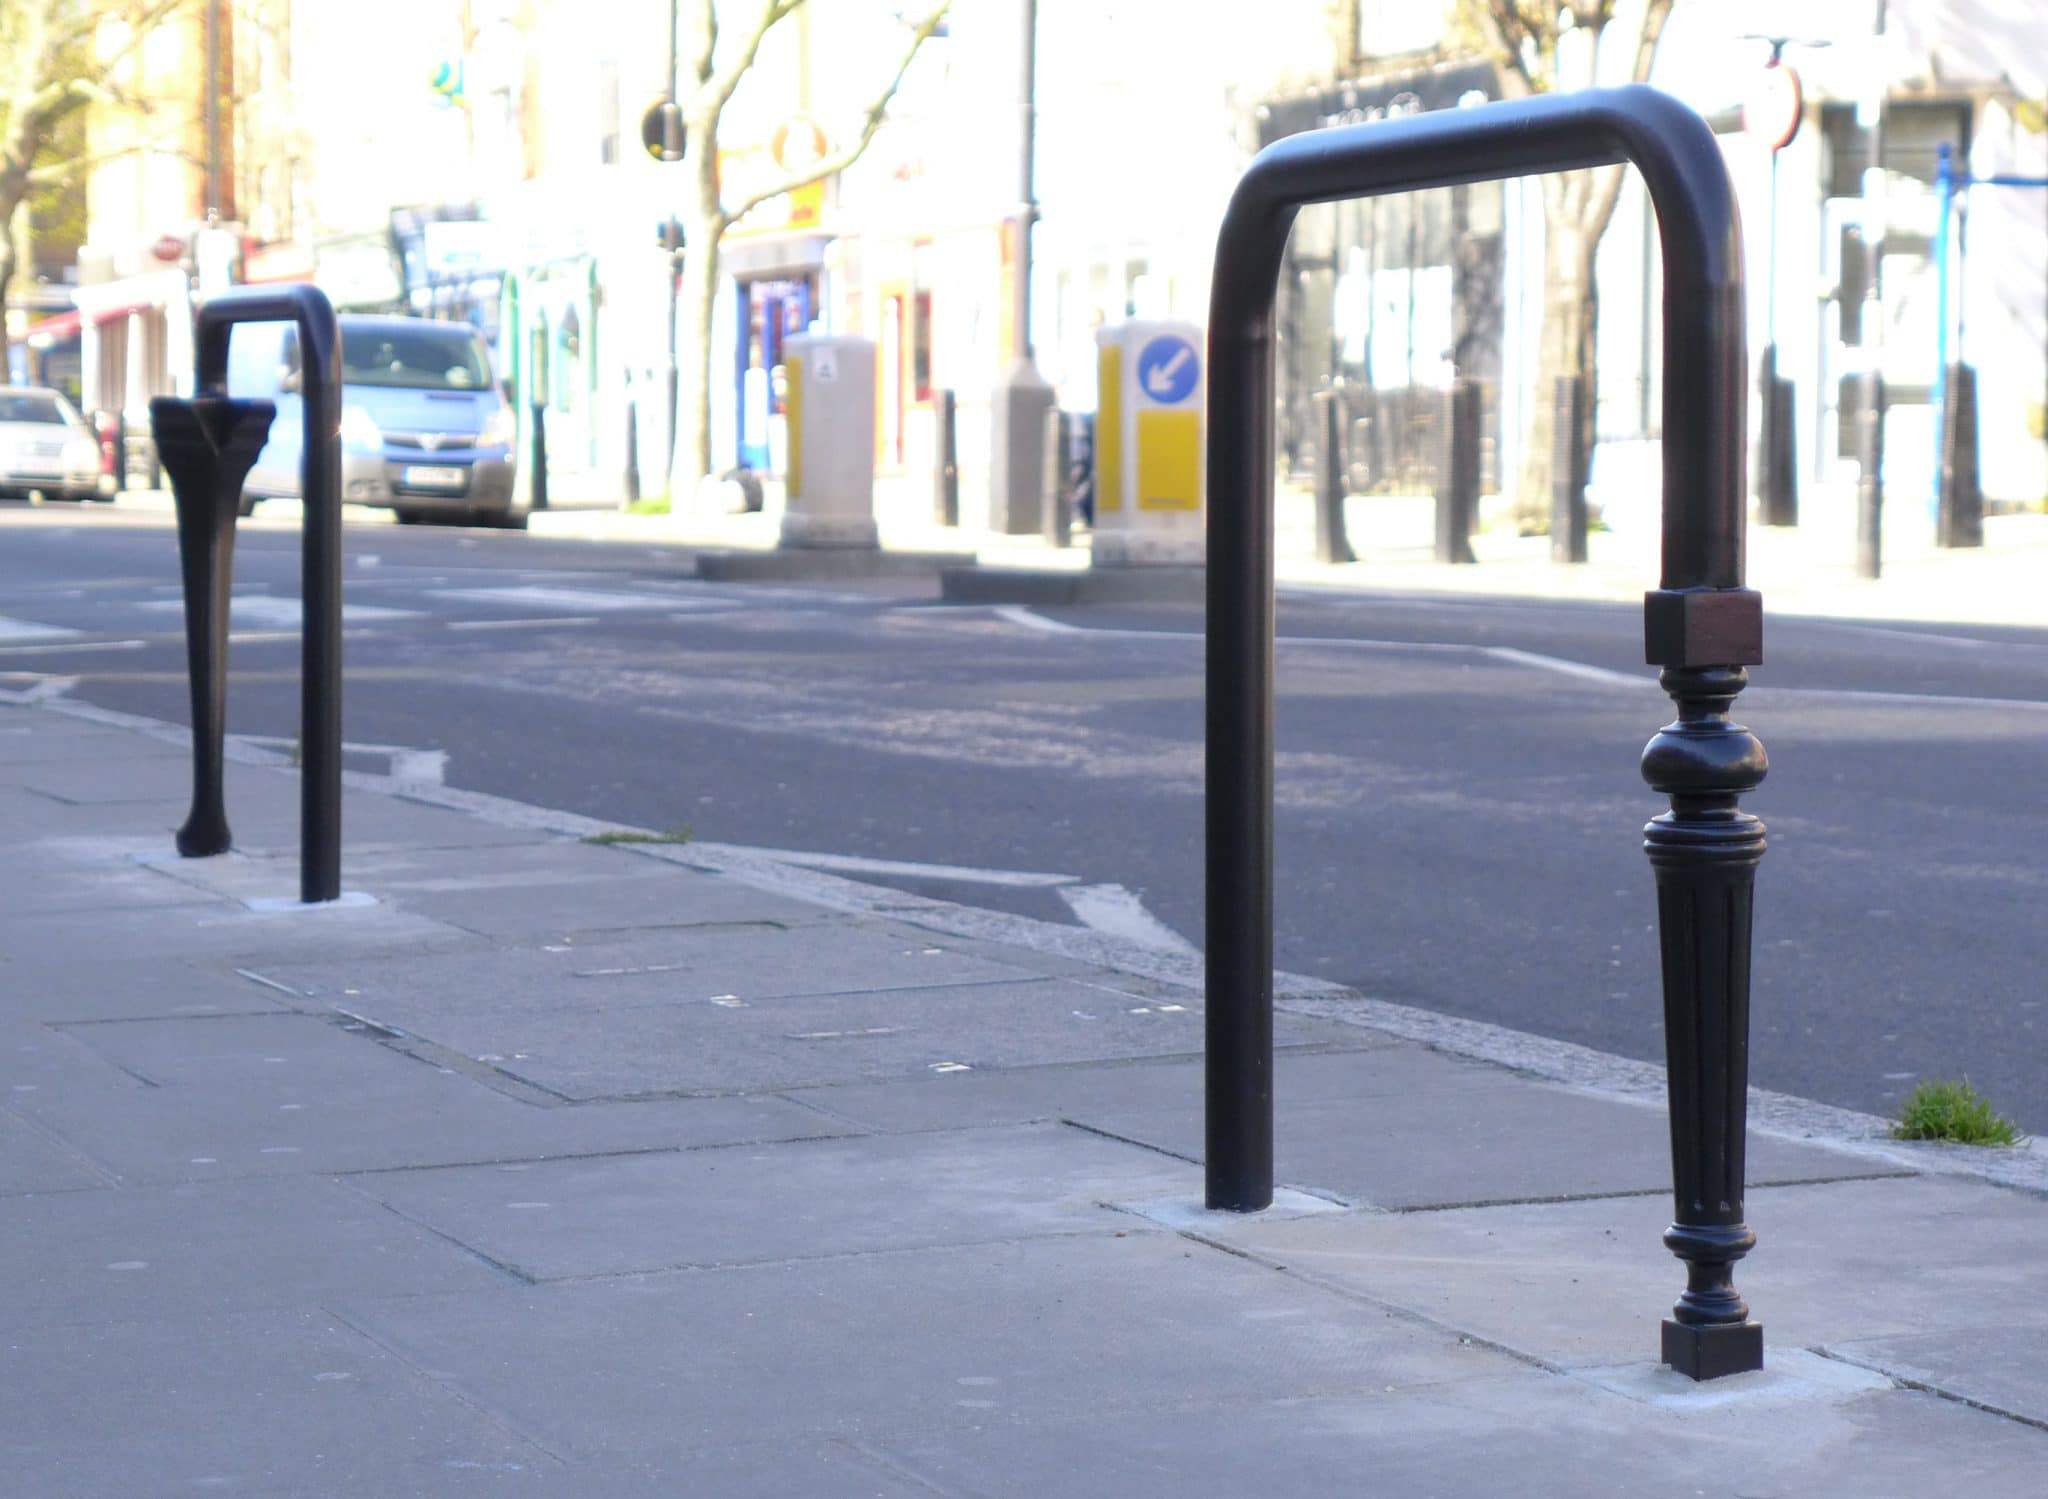 Bespoke cycle stands installed on Caledonian road